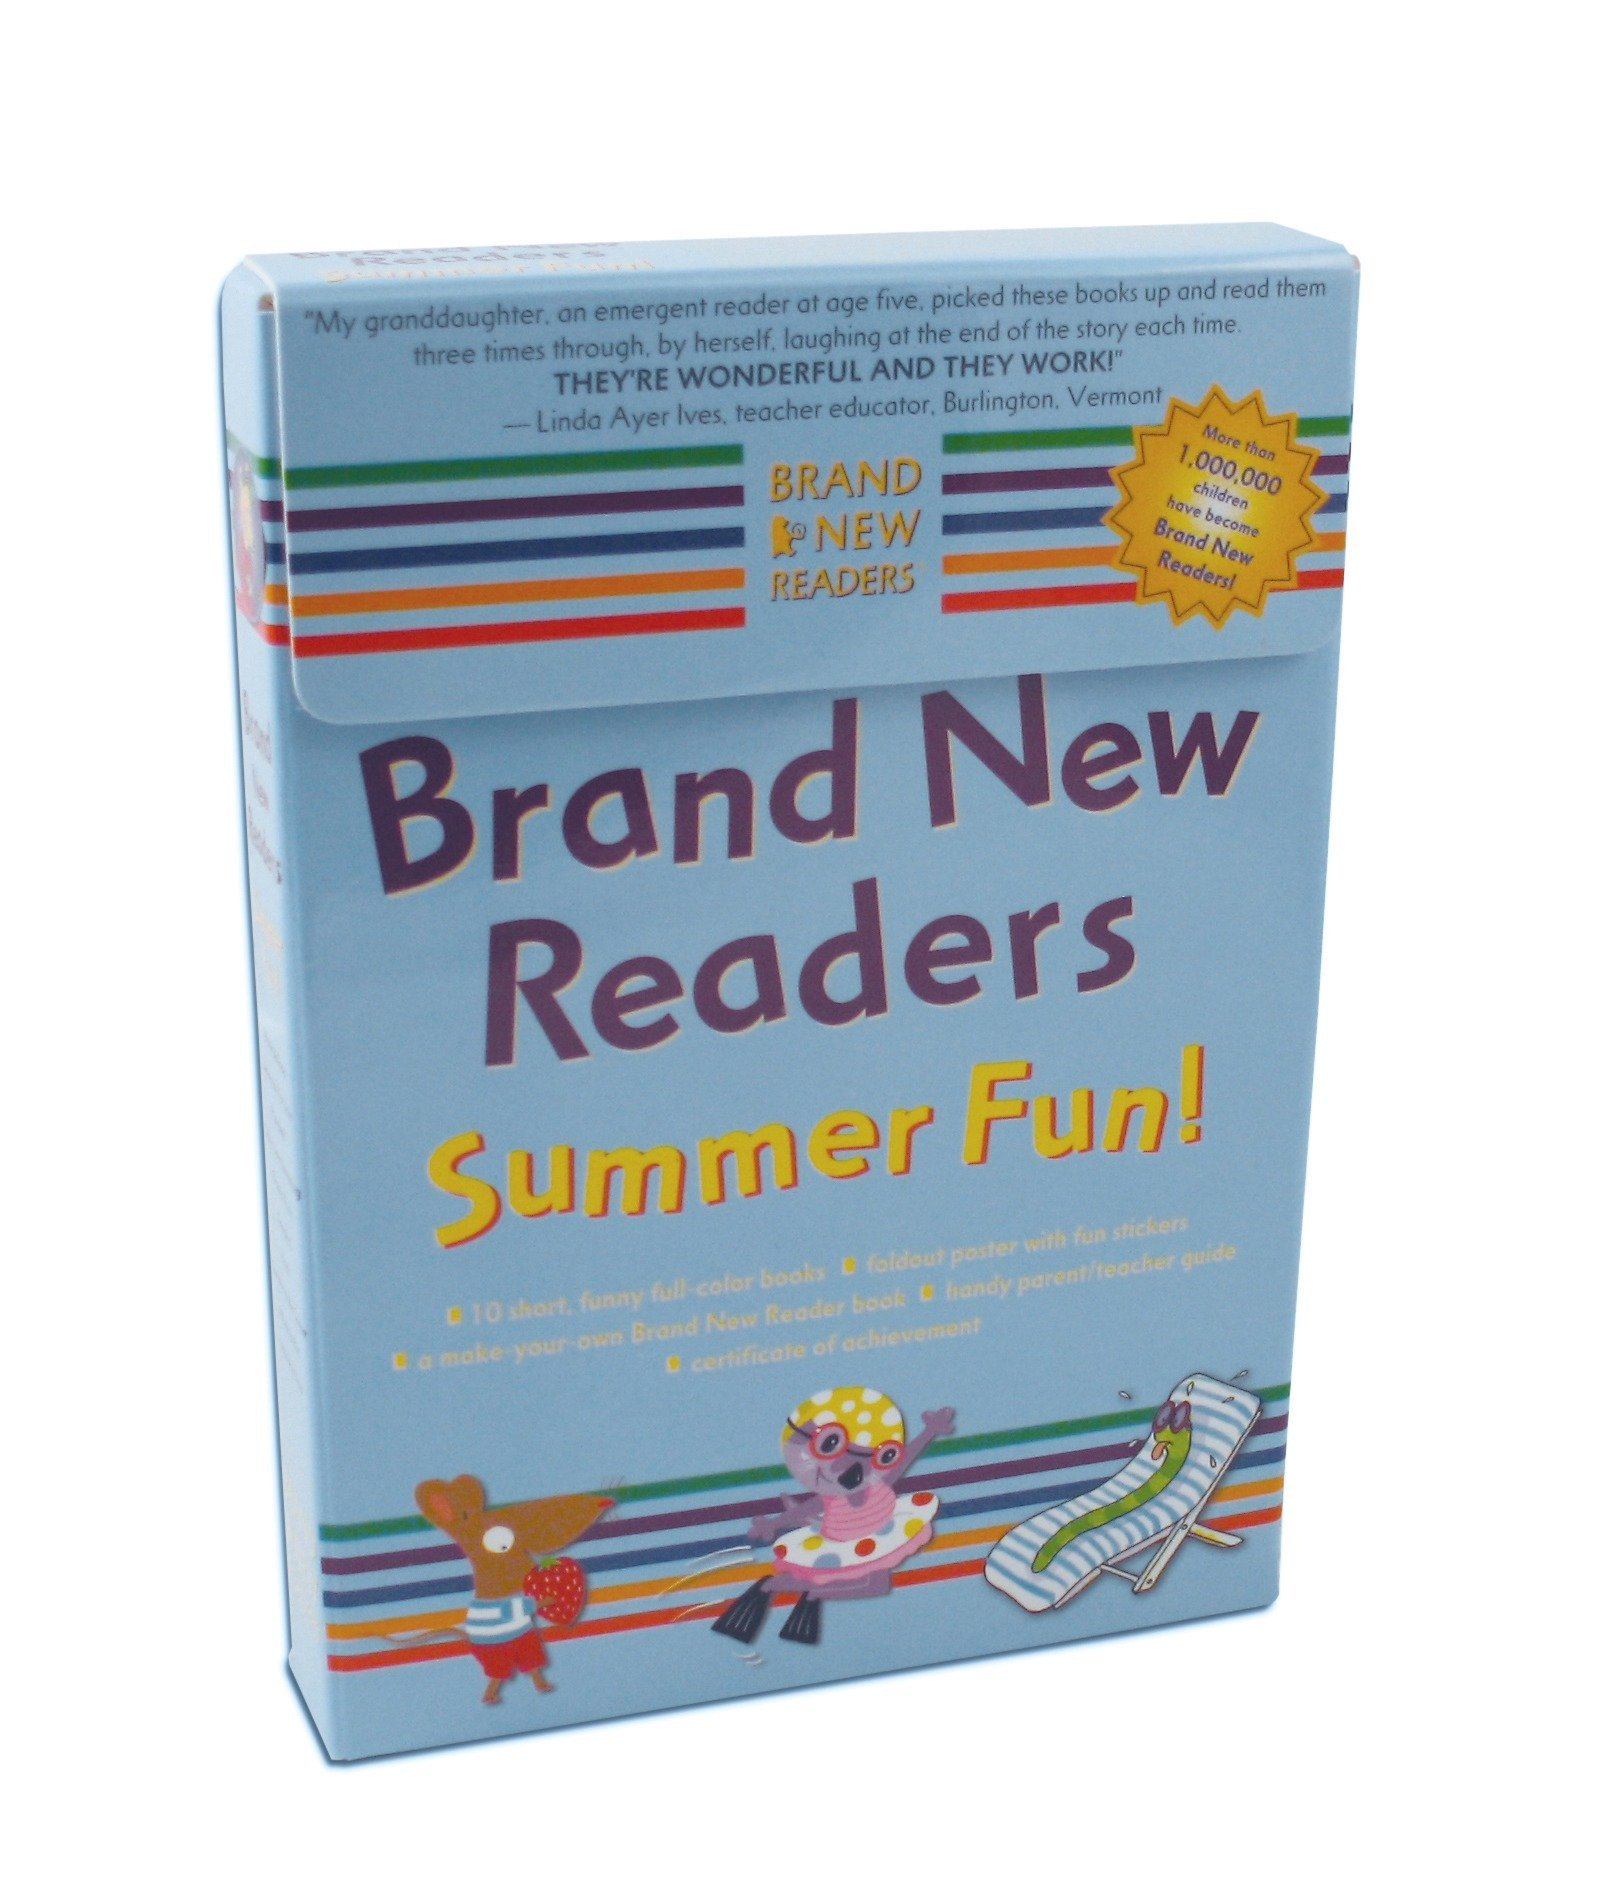 Brand New Readers Summer Fun! Box by Candlewick Press